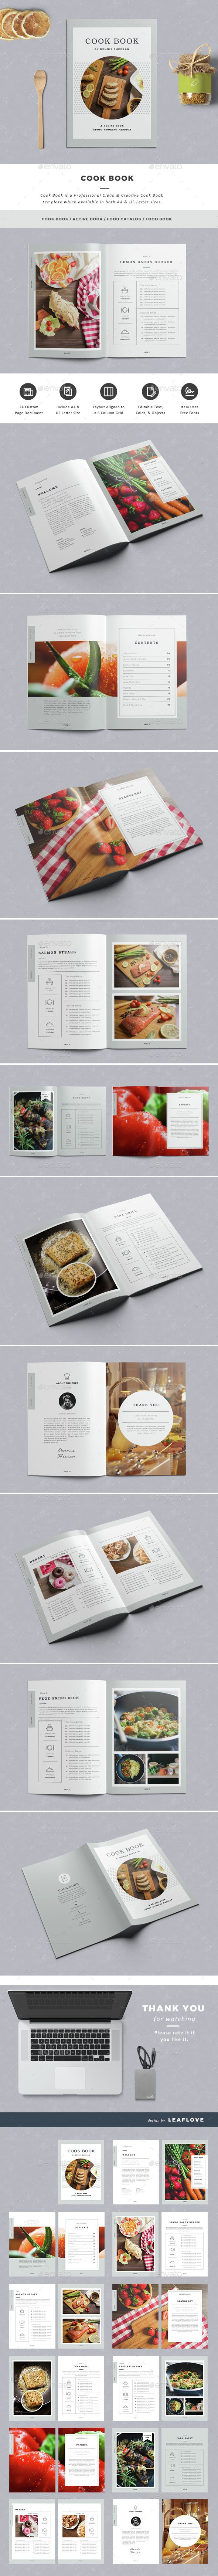 Pages Cook Book Recipe Book Template InDesign INDD Download - Adobe indesign cookbook template